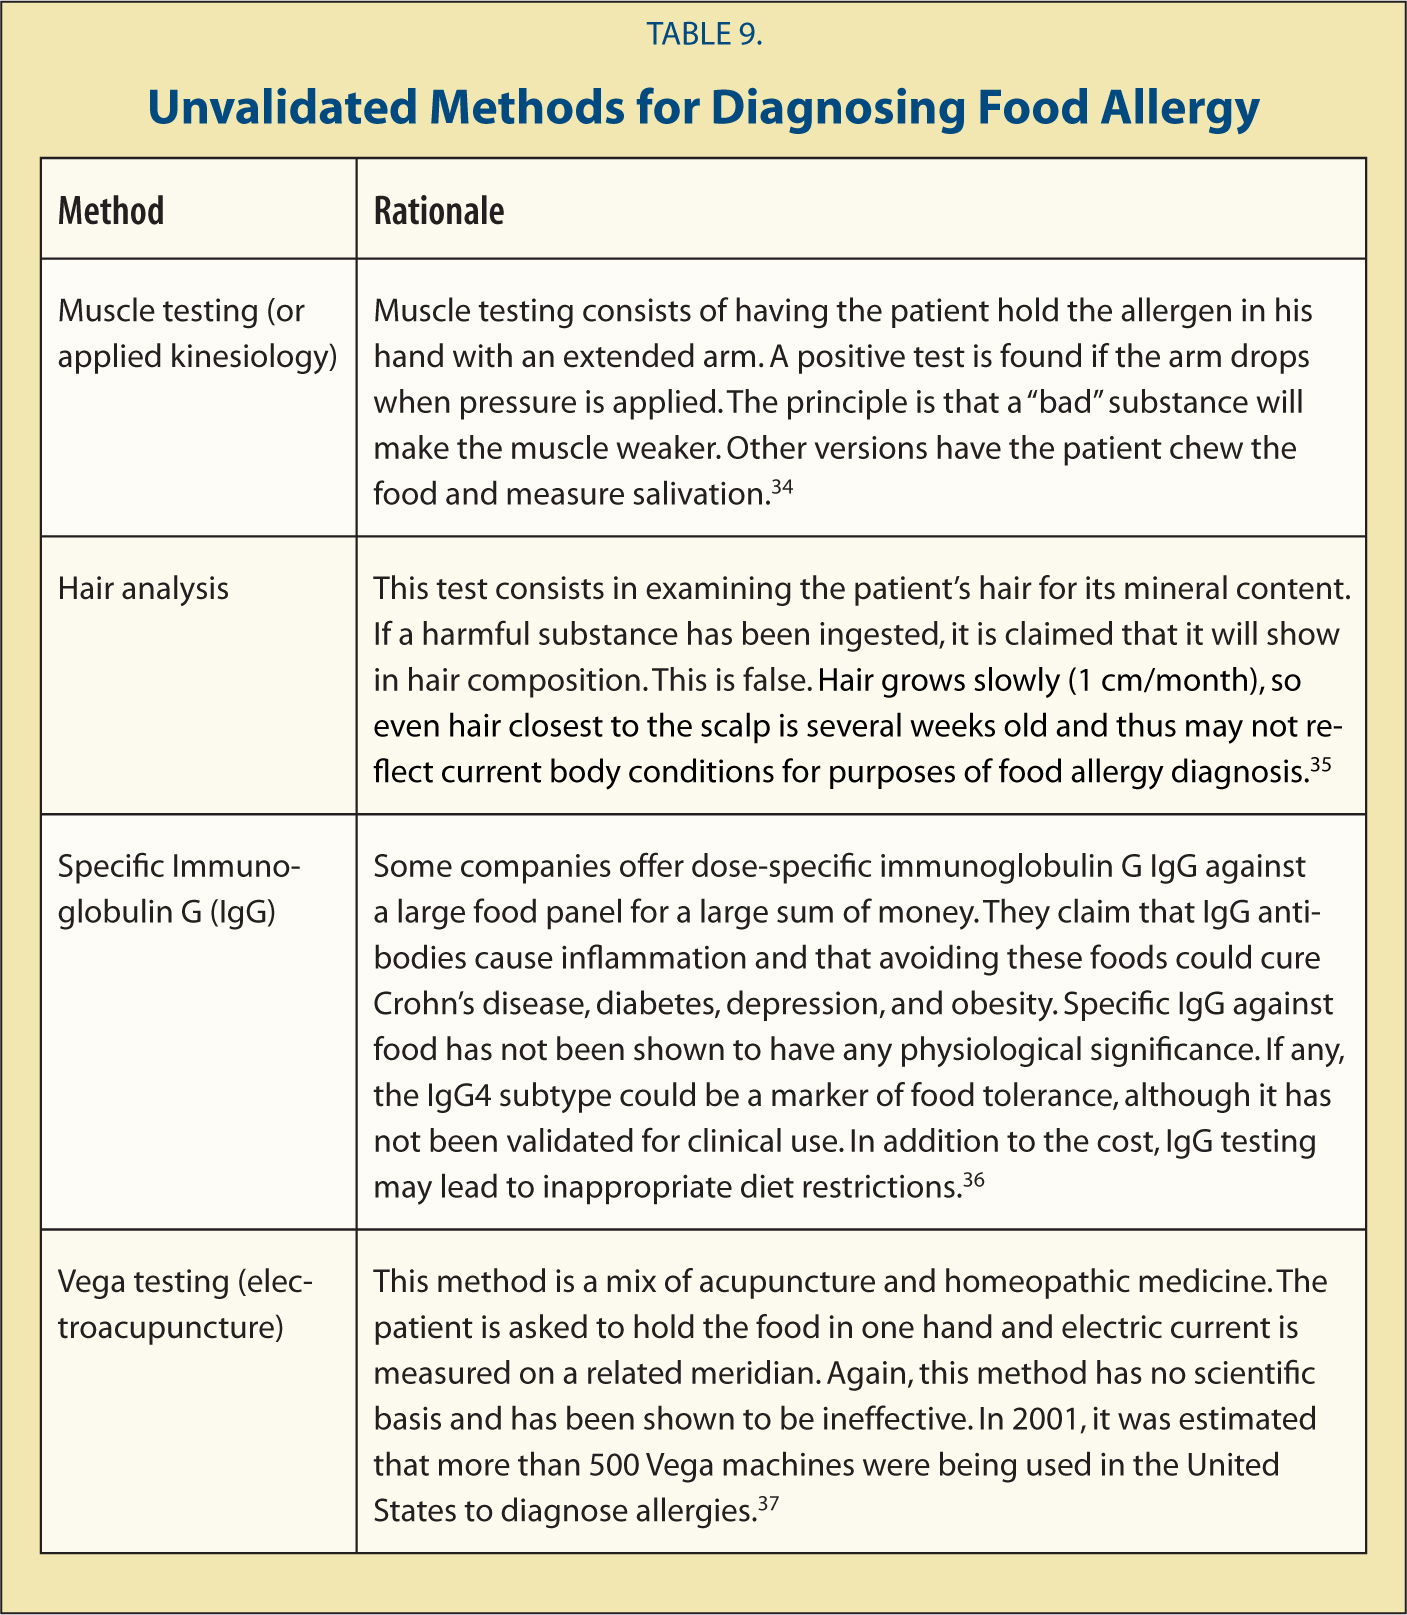 Unvalidated Methods for Diagnosing Food Allergy